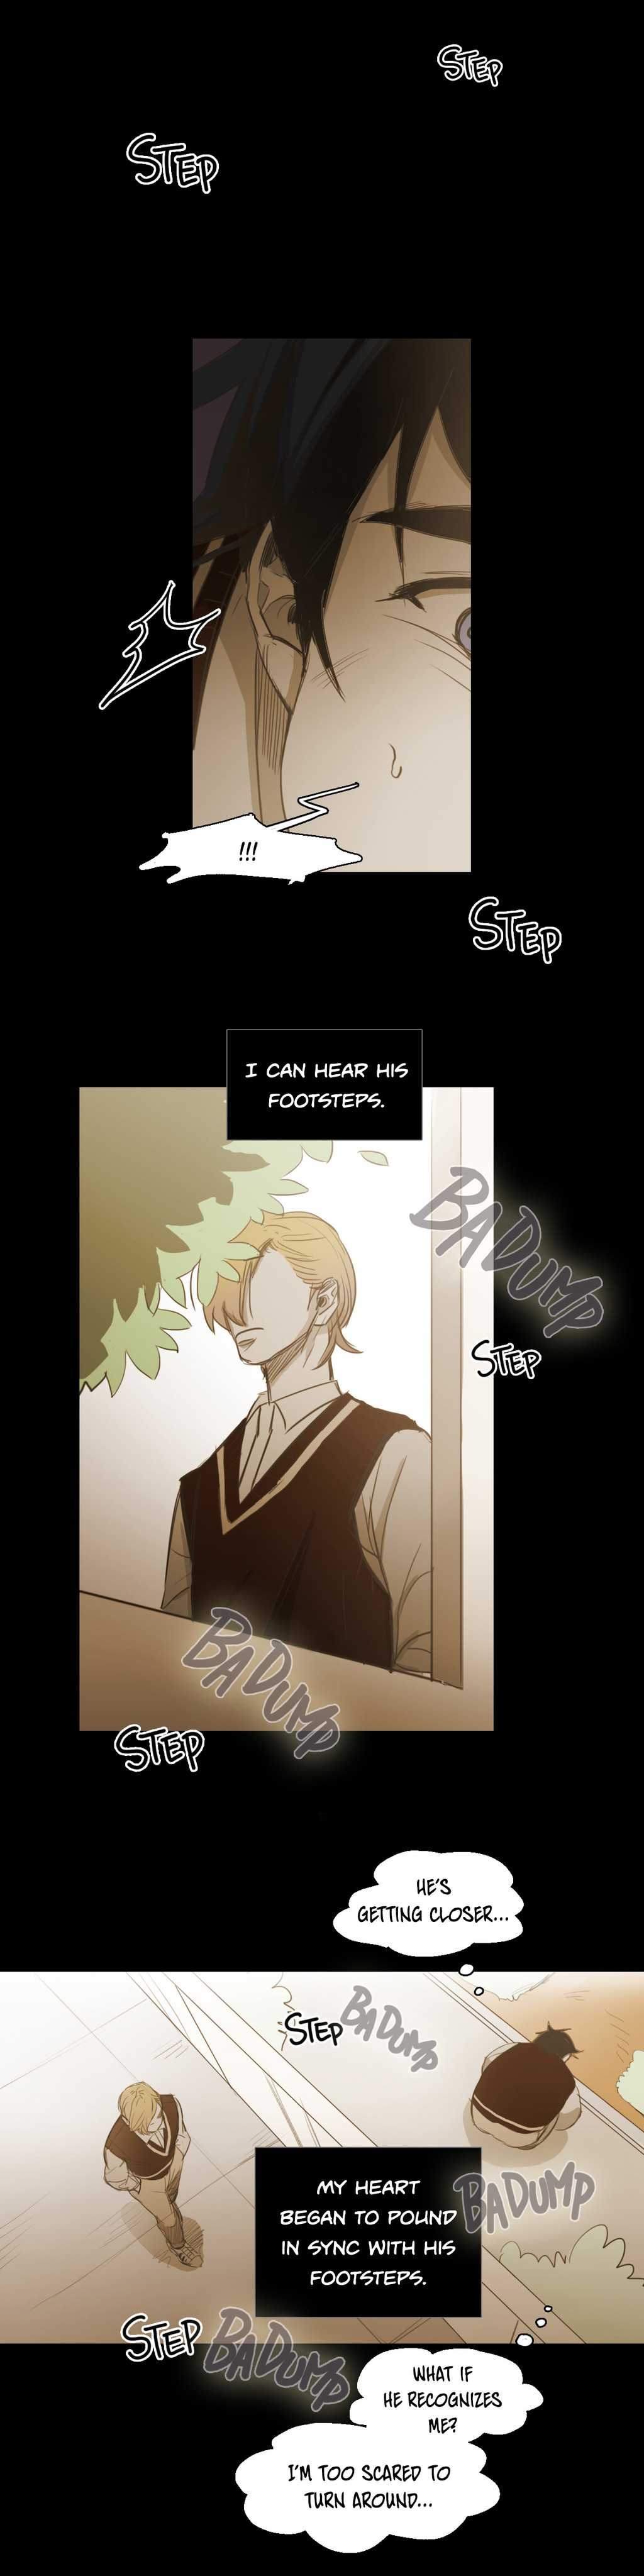 Never Understand - Chapter 58